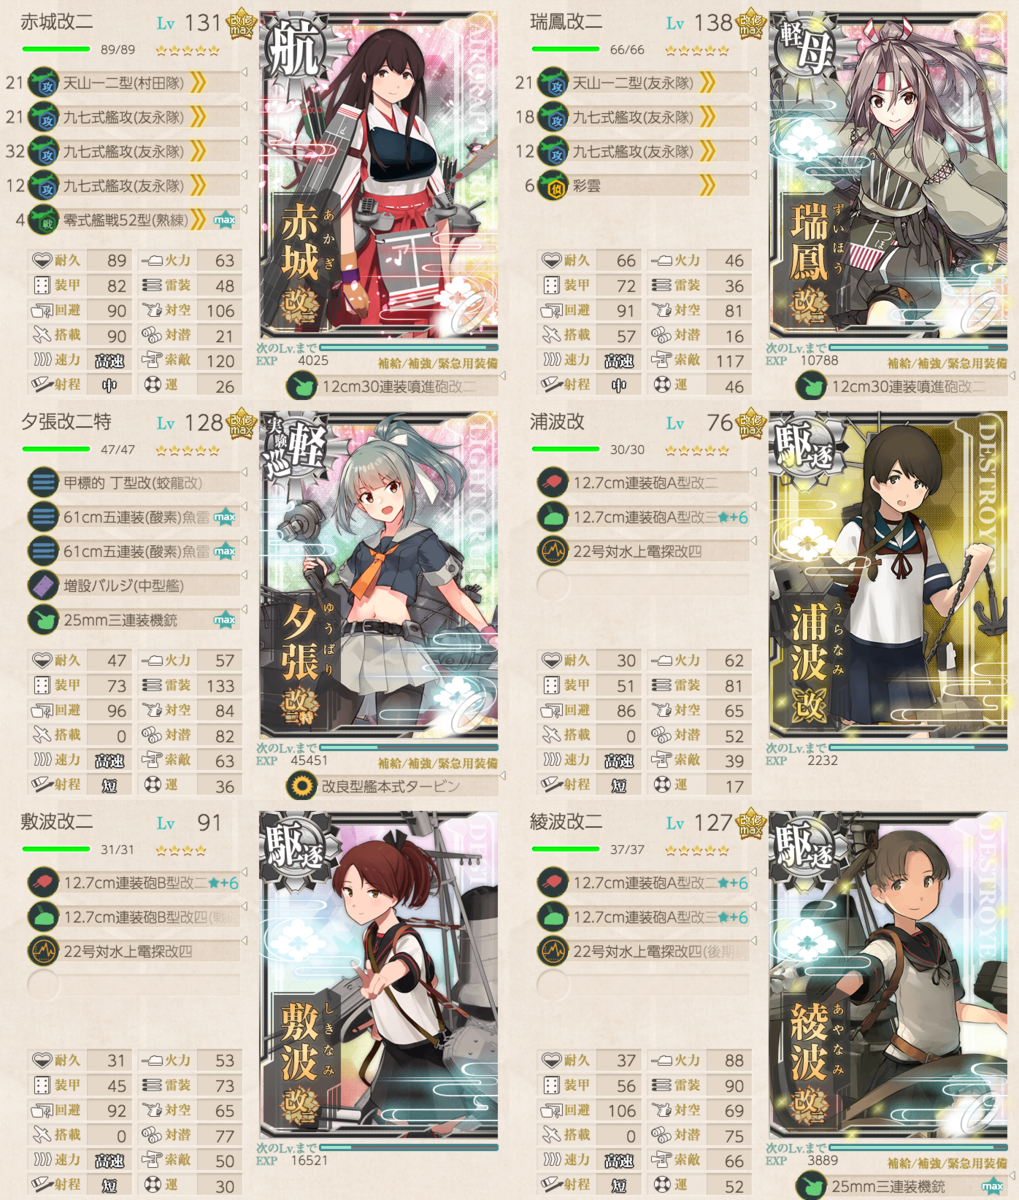 f:id:nameless_admiral:20200208021452p:plain